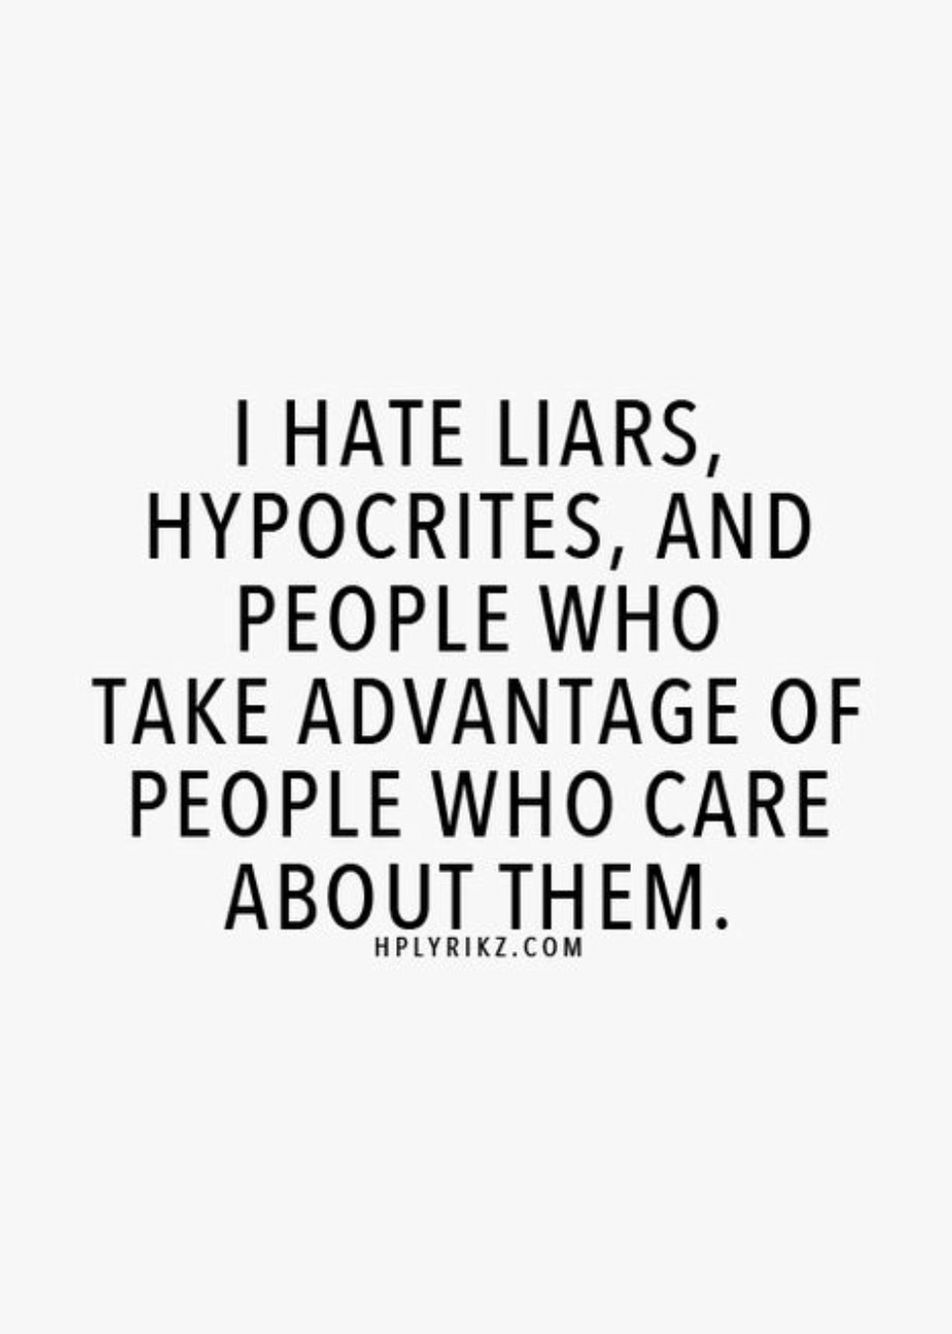 I HATE Liars, hypocrites and people who take advantage of